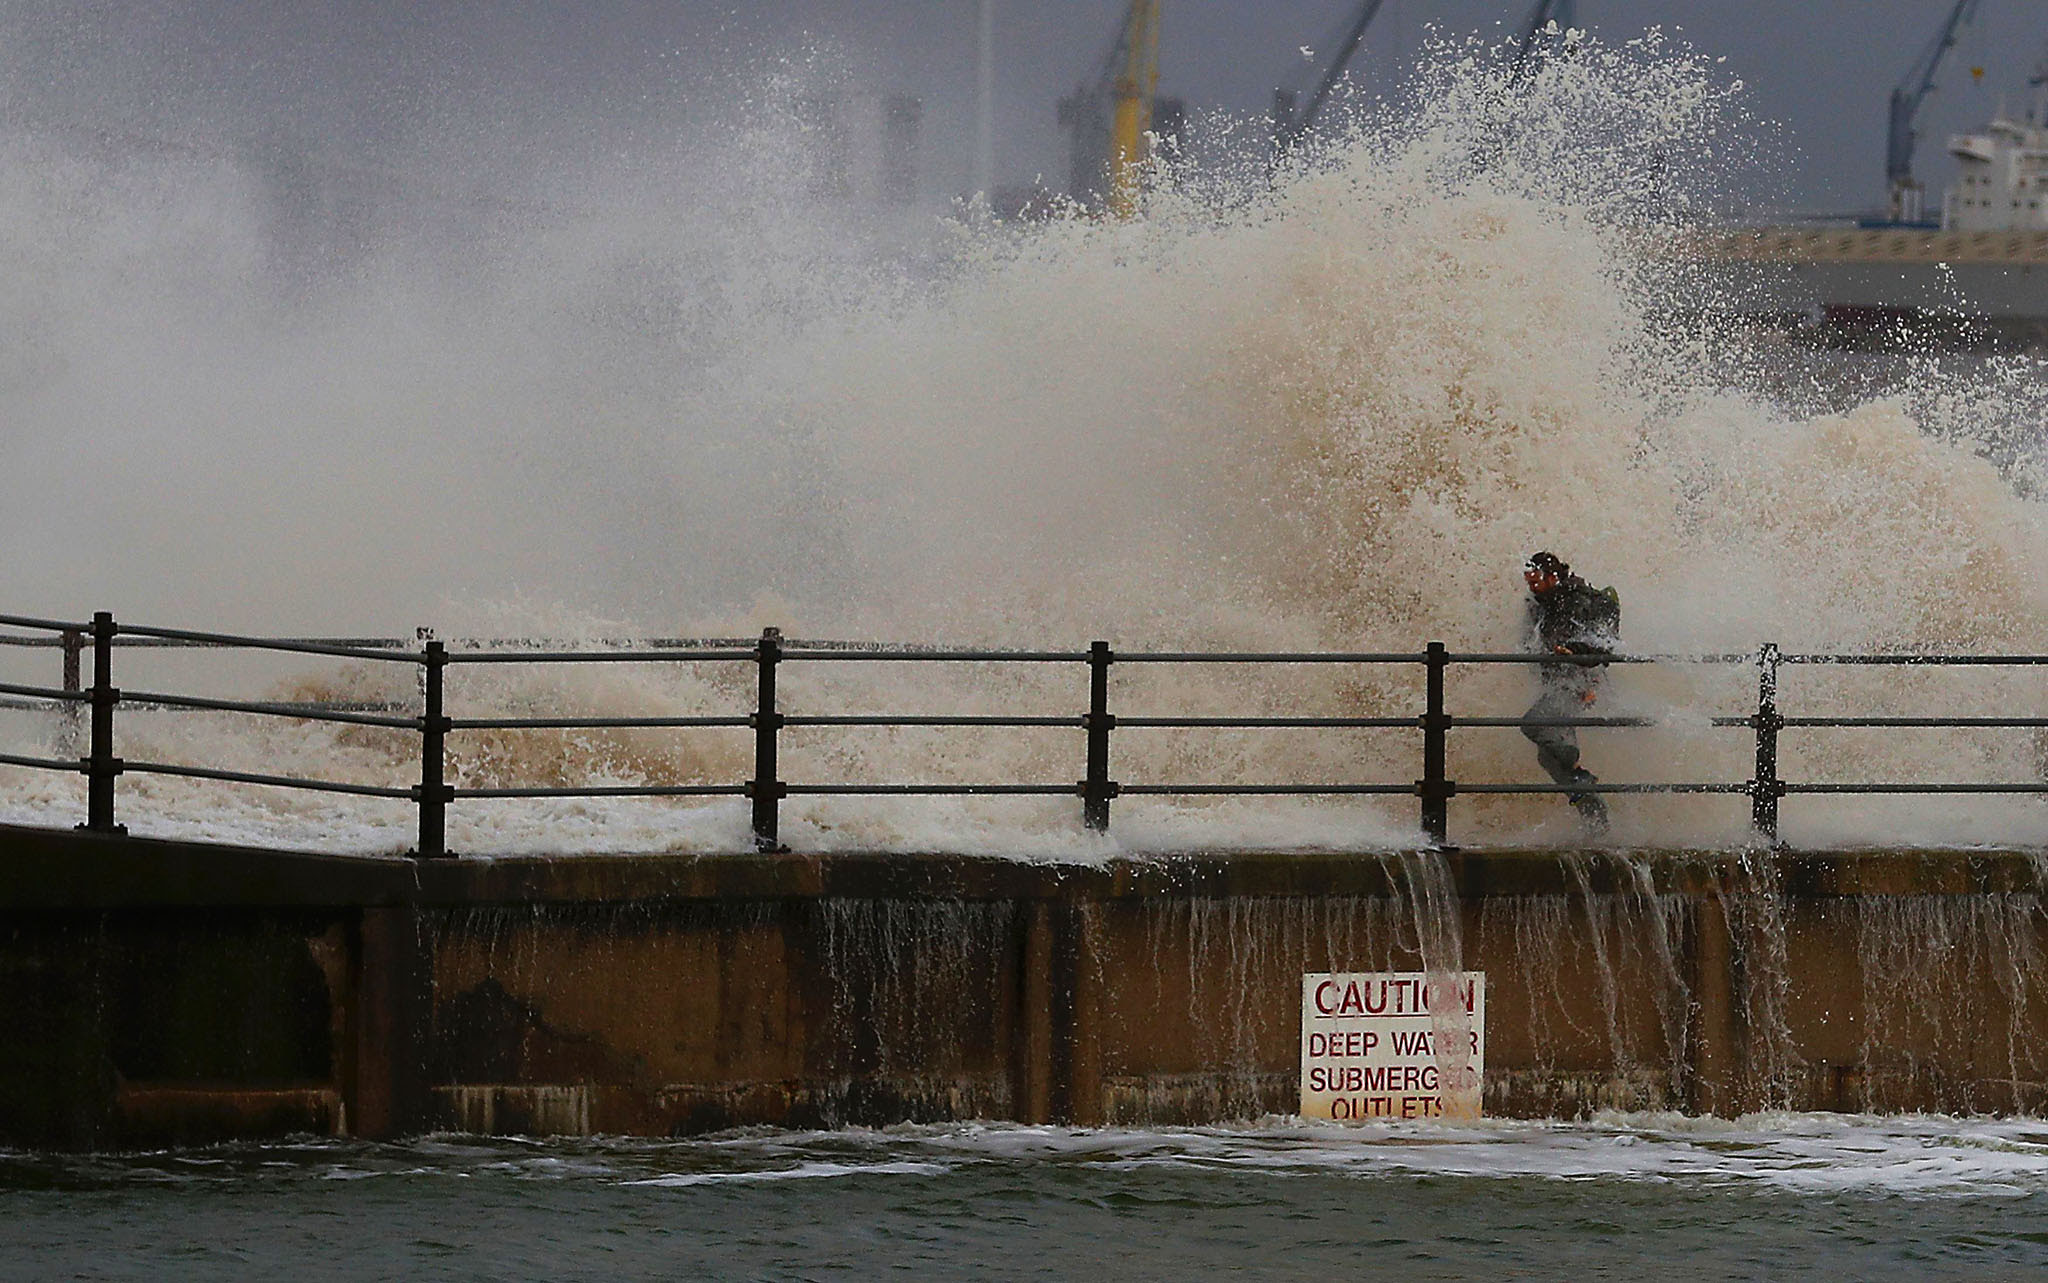 A man is battered by a wave as he walks along the seafront in New Brighton, northern England November 16, 2016.